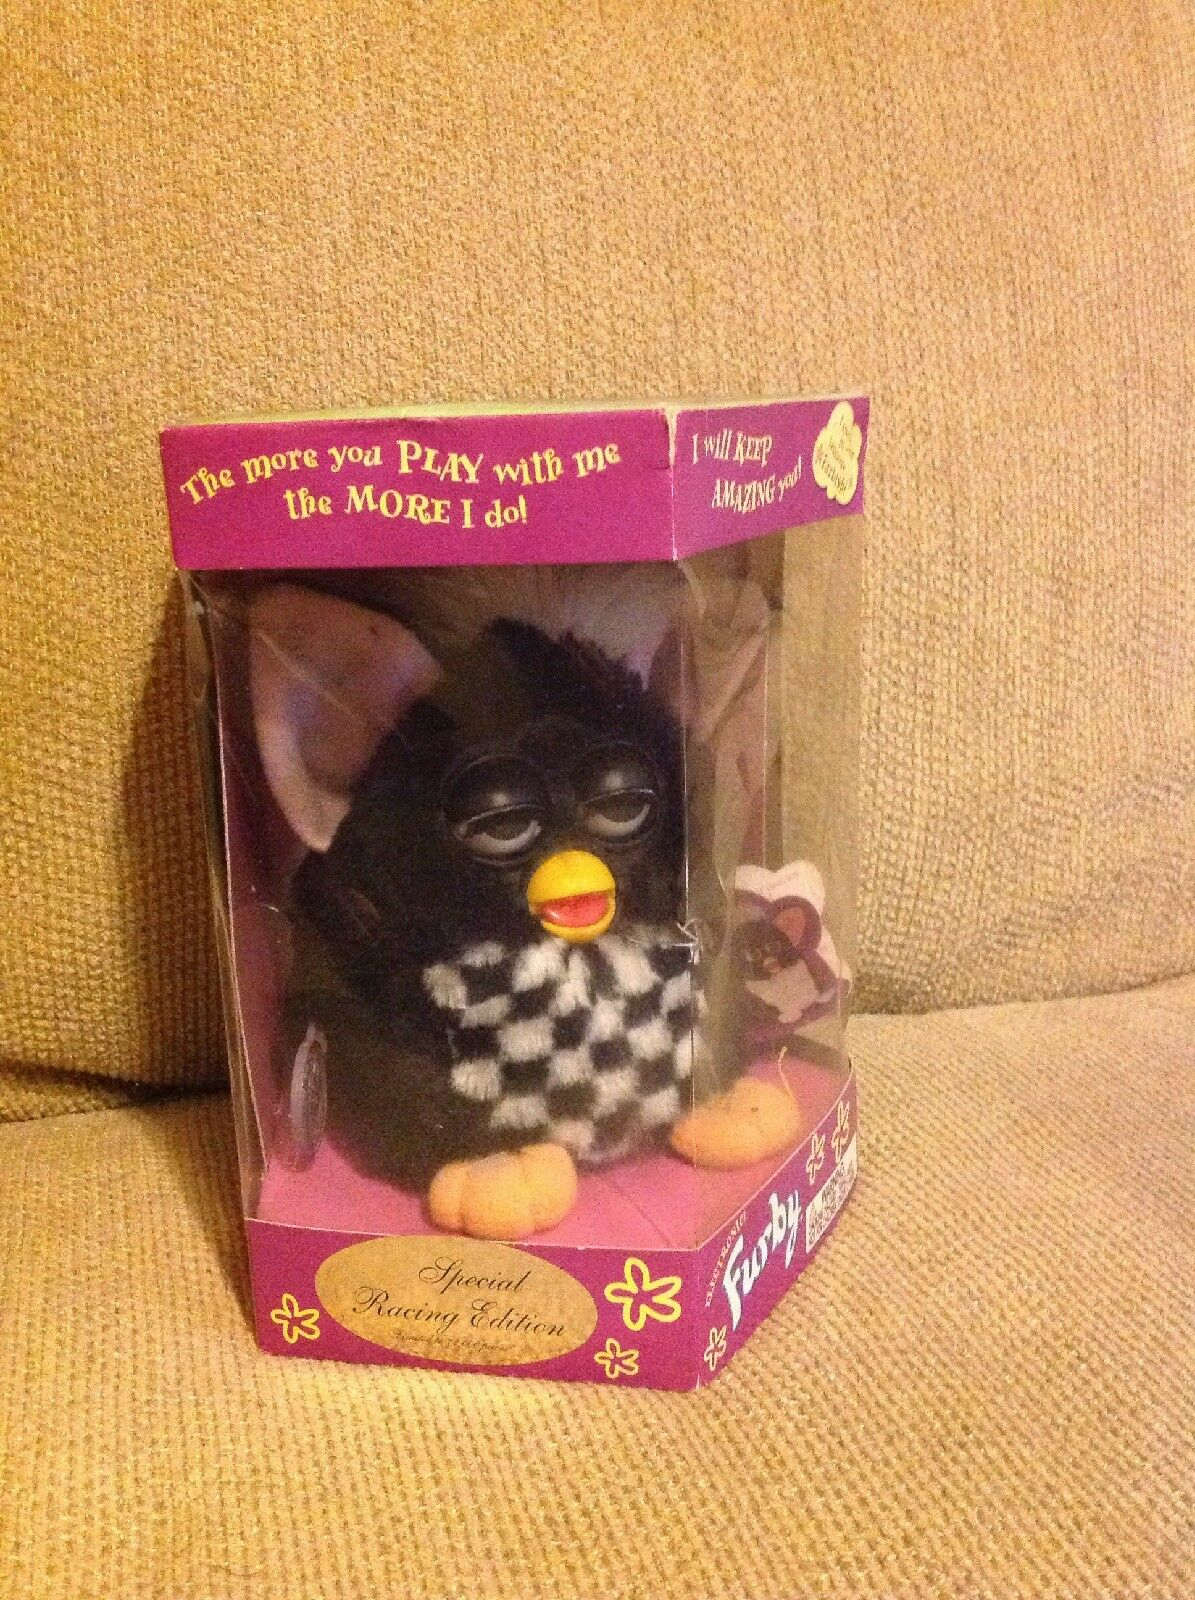 NEW SEALED Furby Electronic Special Racing Edition 1999 70-891 Only 72,000 Made